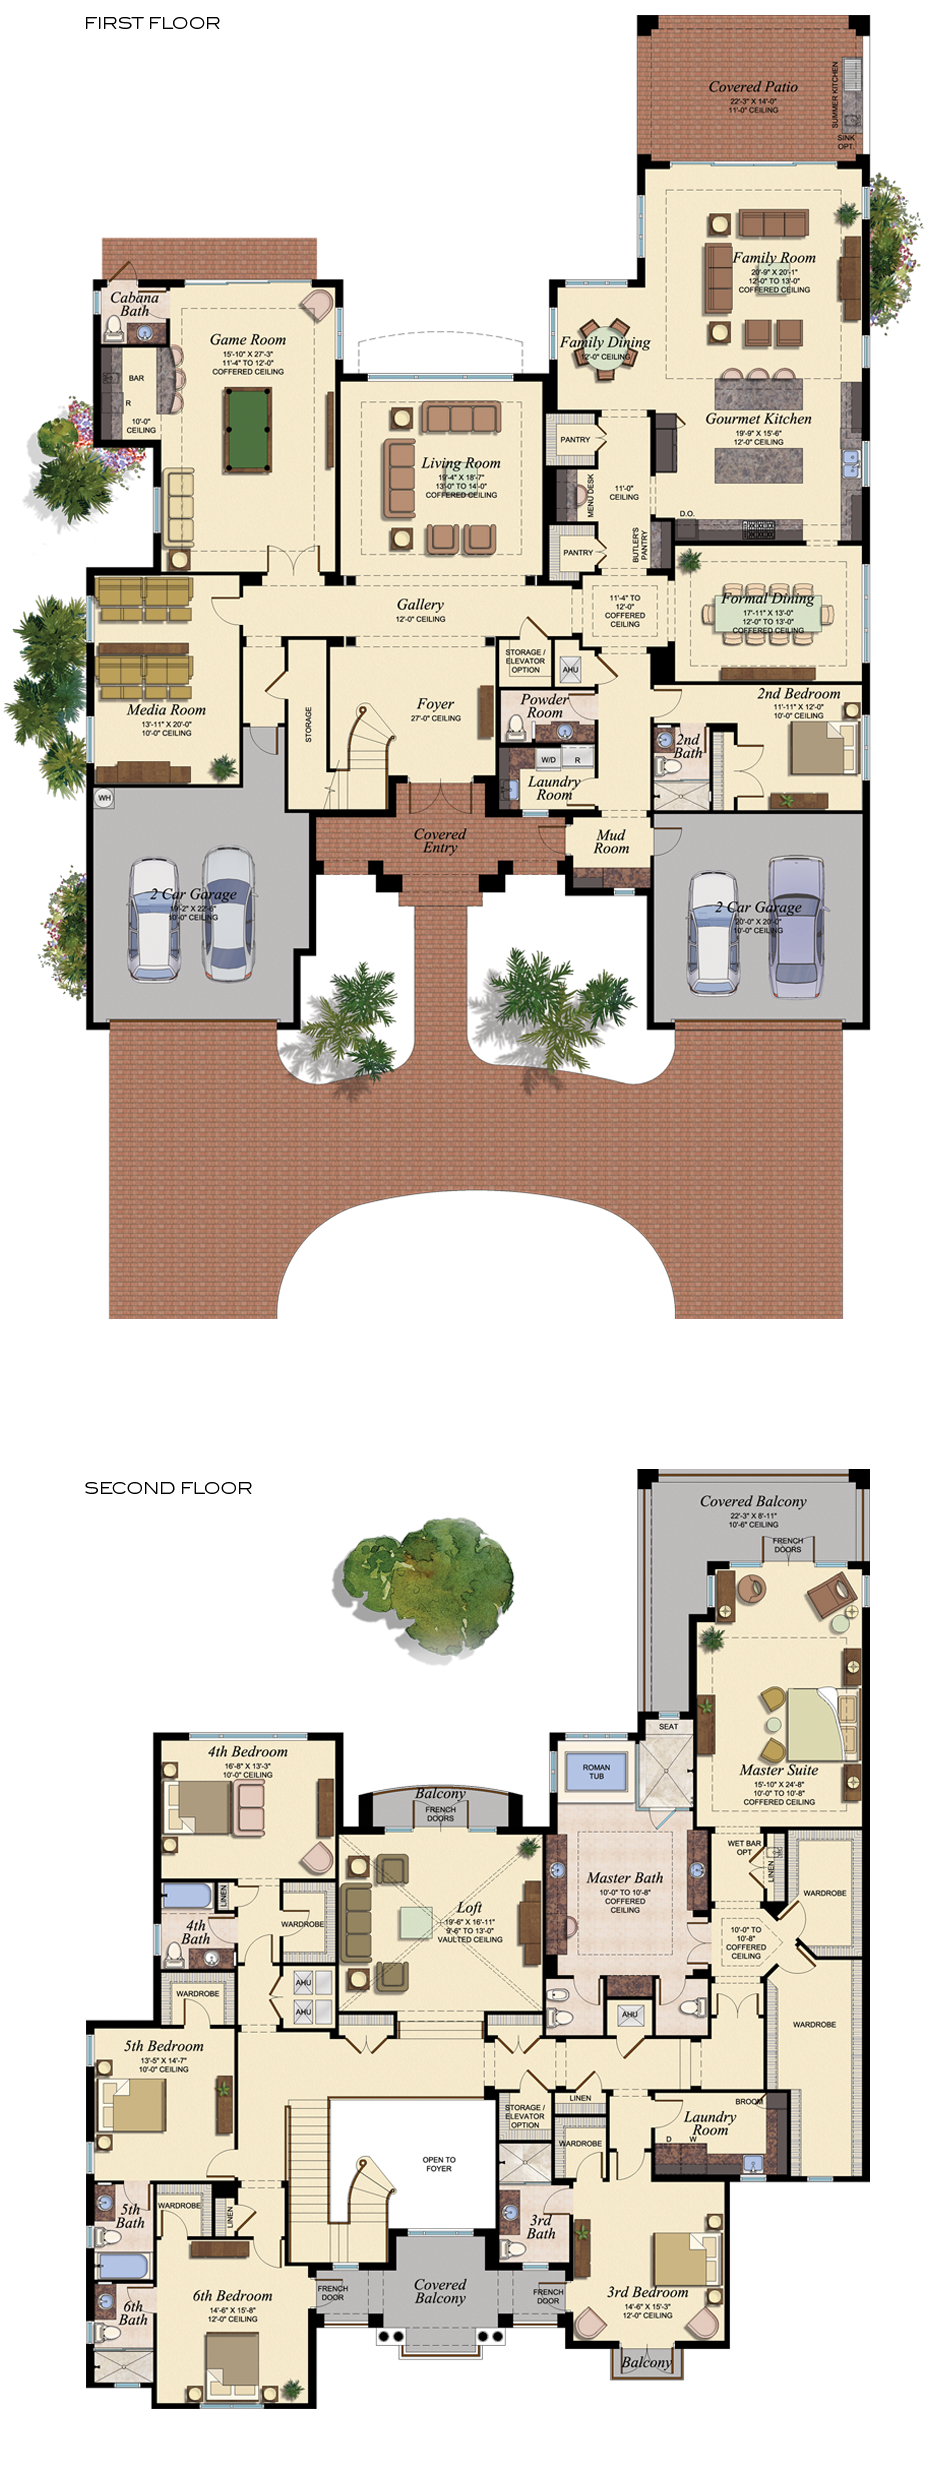 Palazzo 904 Floor Plan Large View In 2019 House